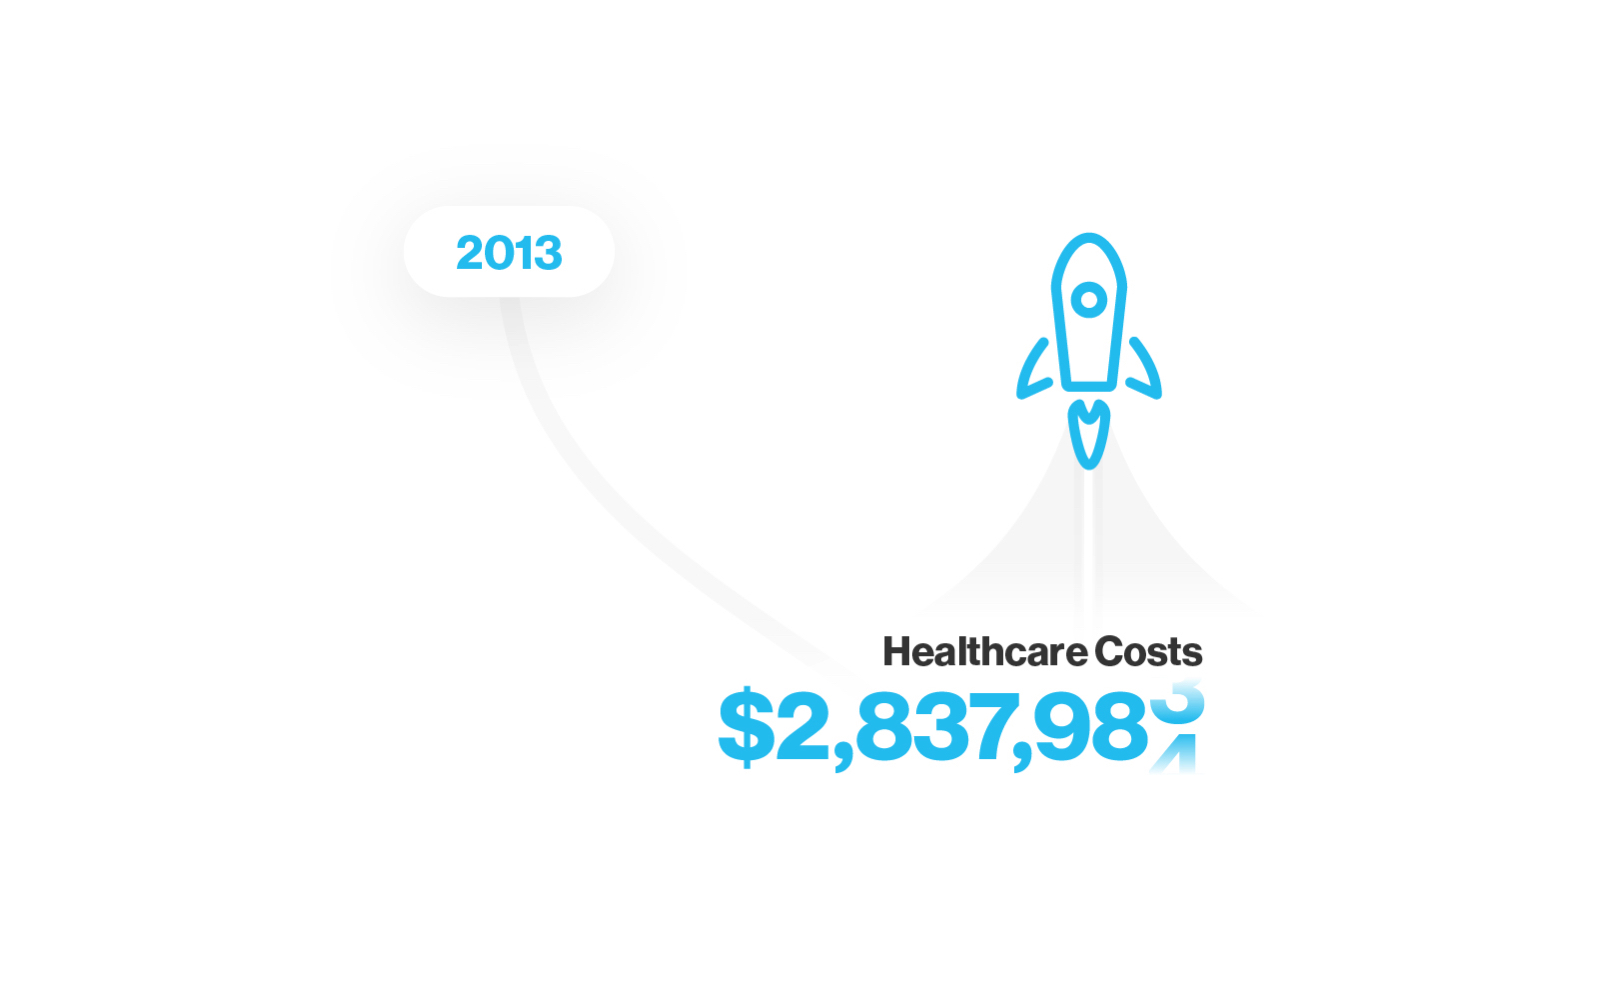 Healthcare costs are skyrocketing. Illustration.